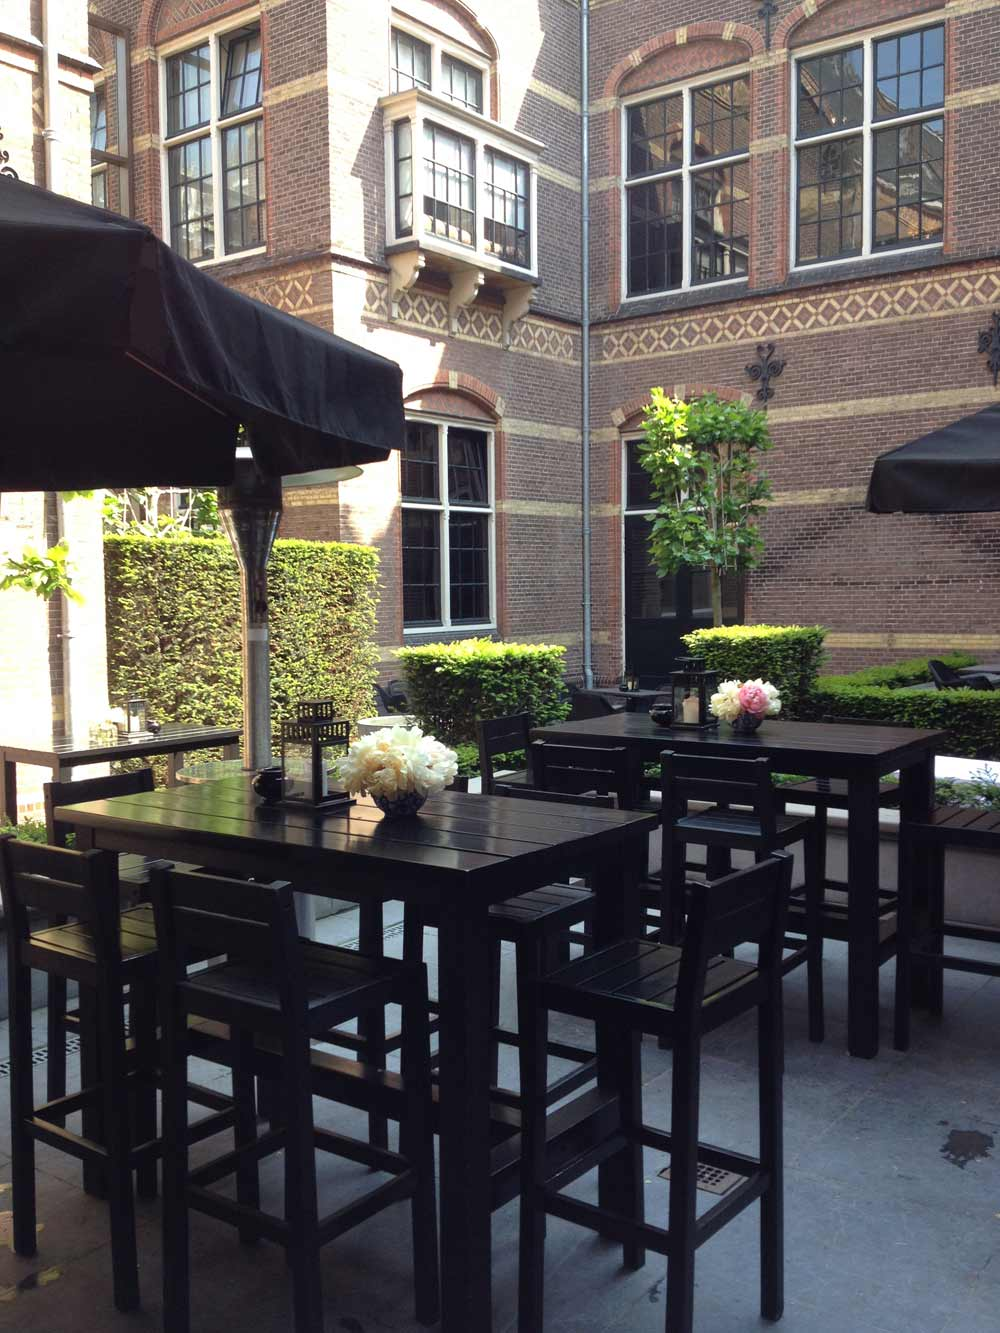 Outdoor lounge area at The College HotelAmsterdam